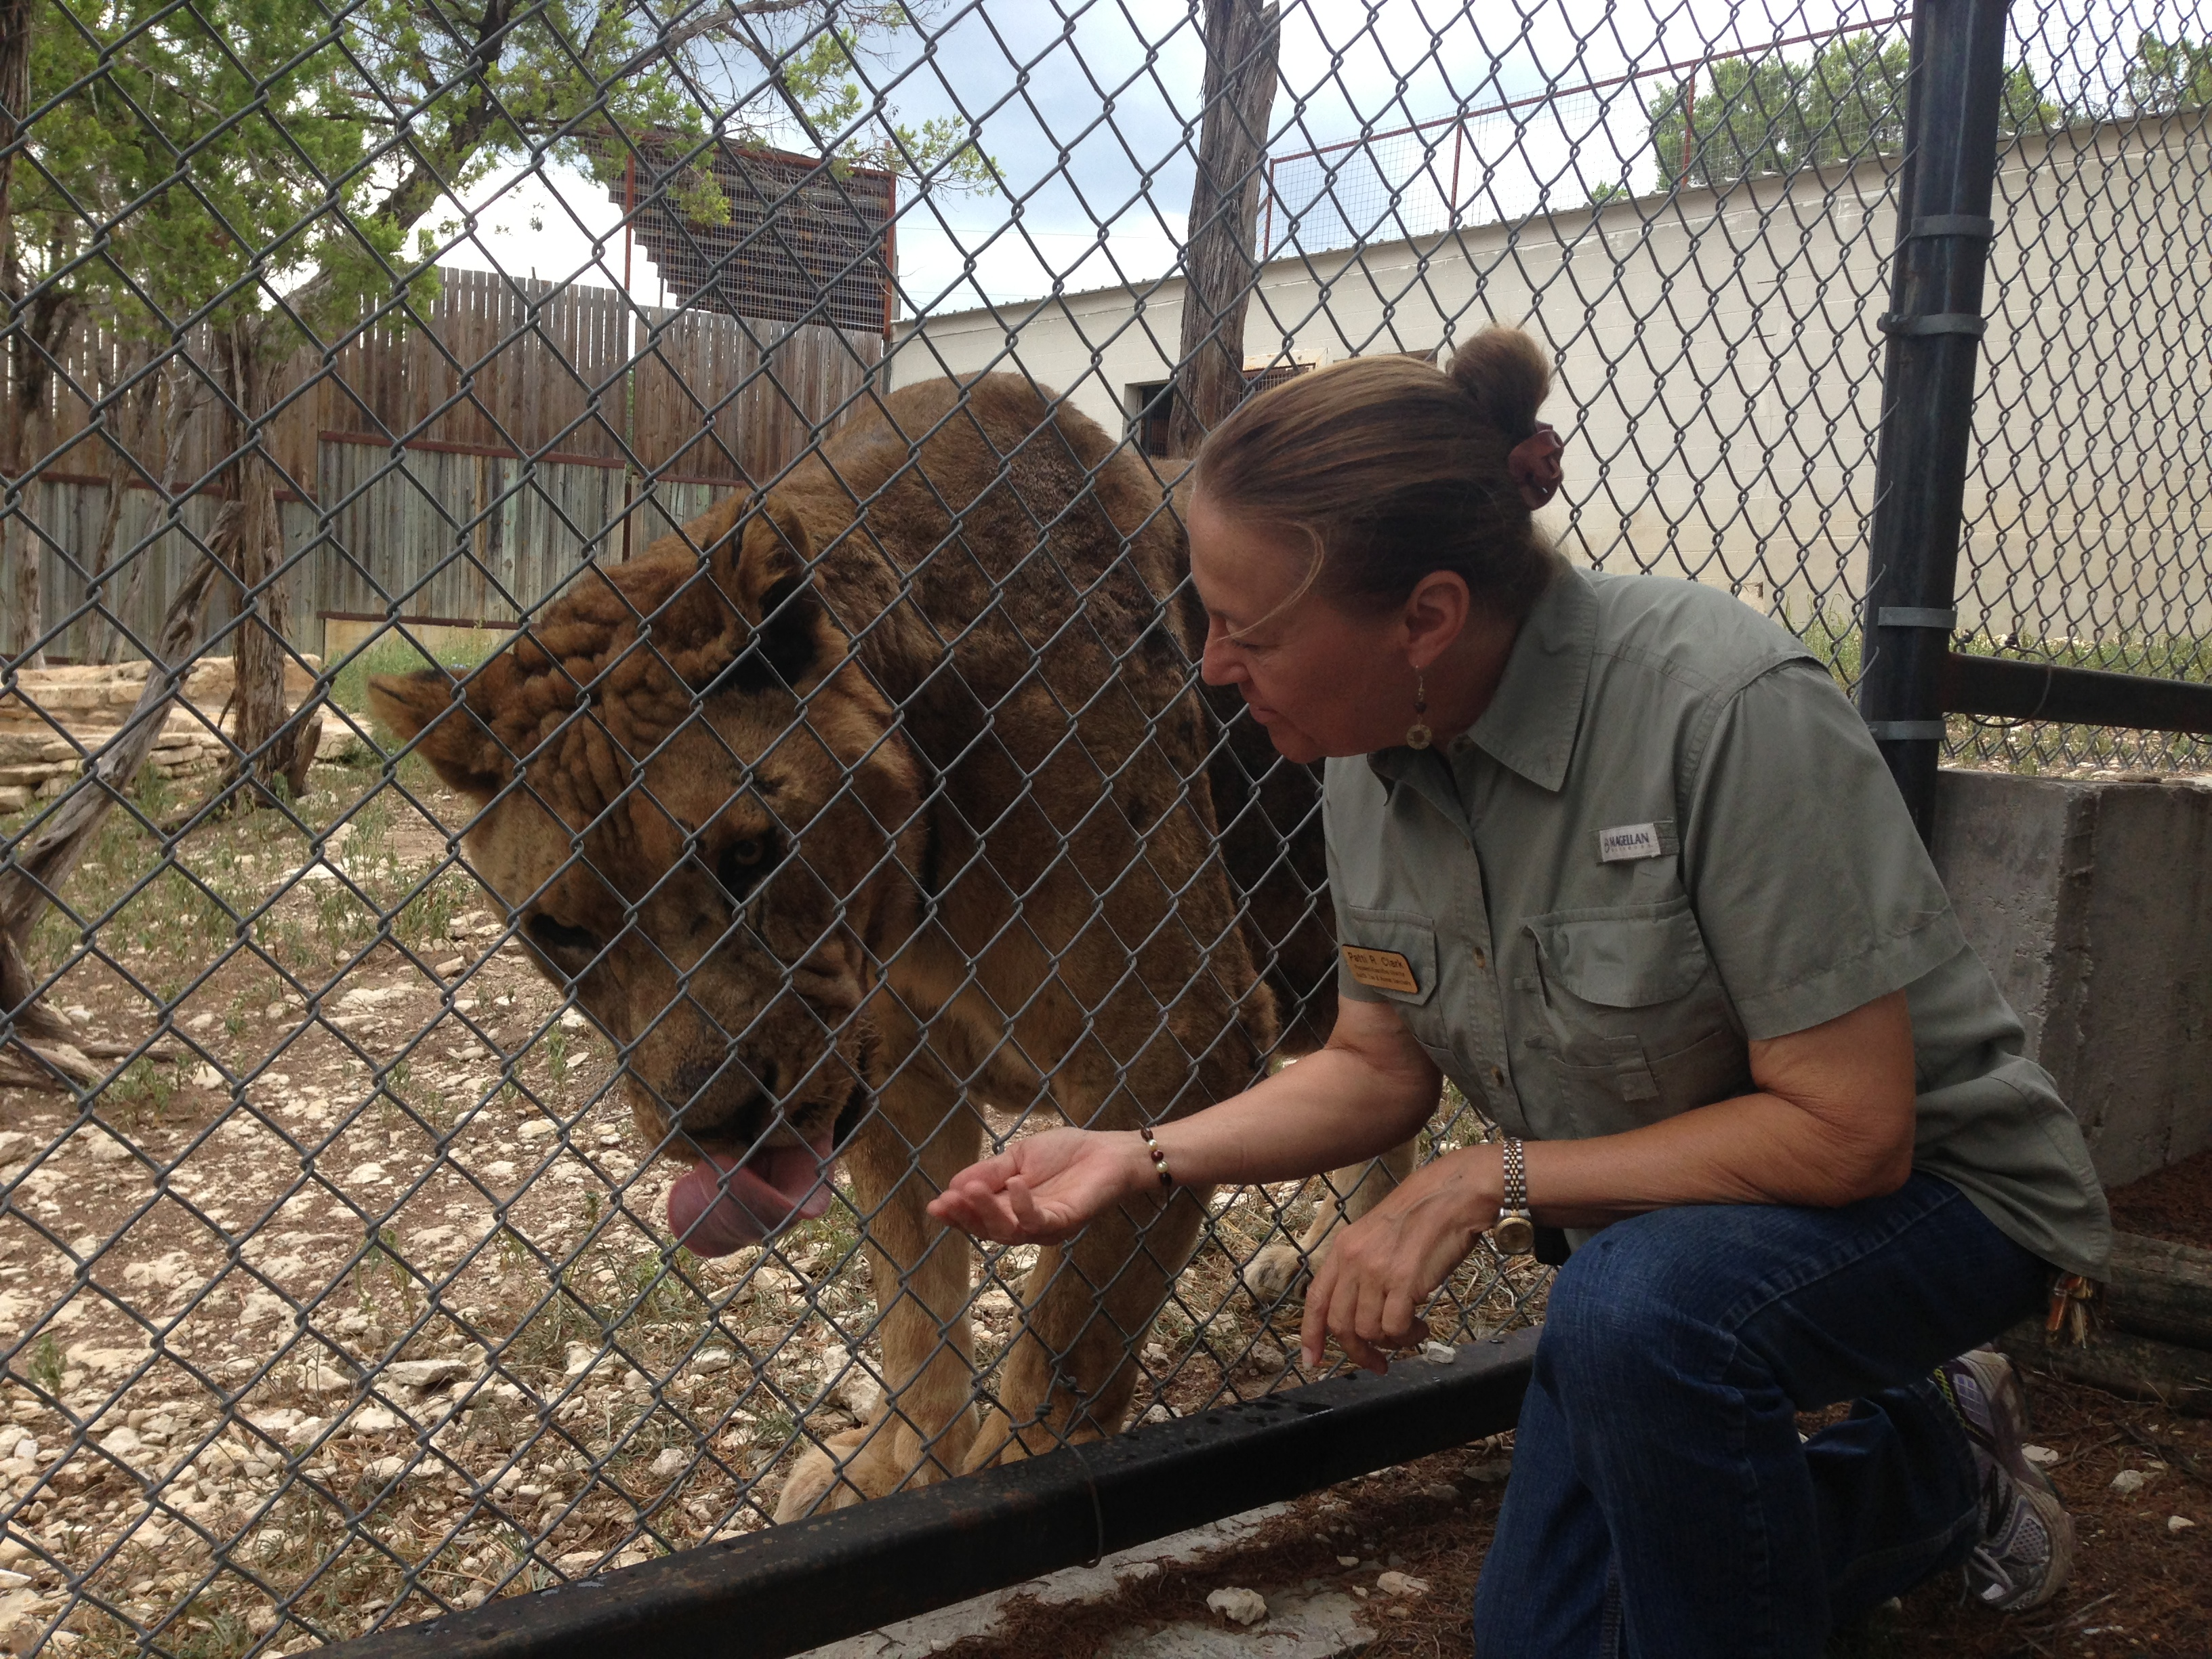 A Trip to the Zoo with Animal Helpers: Meet Austin Zoo